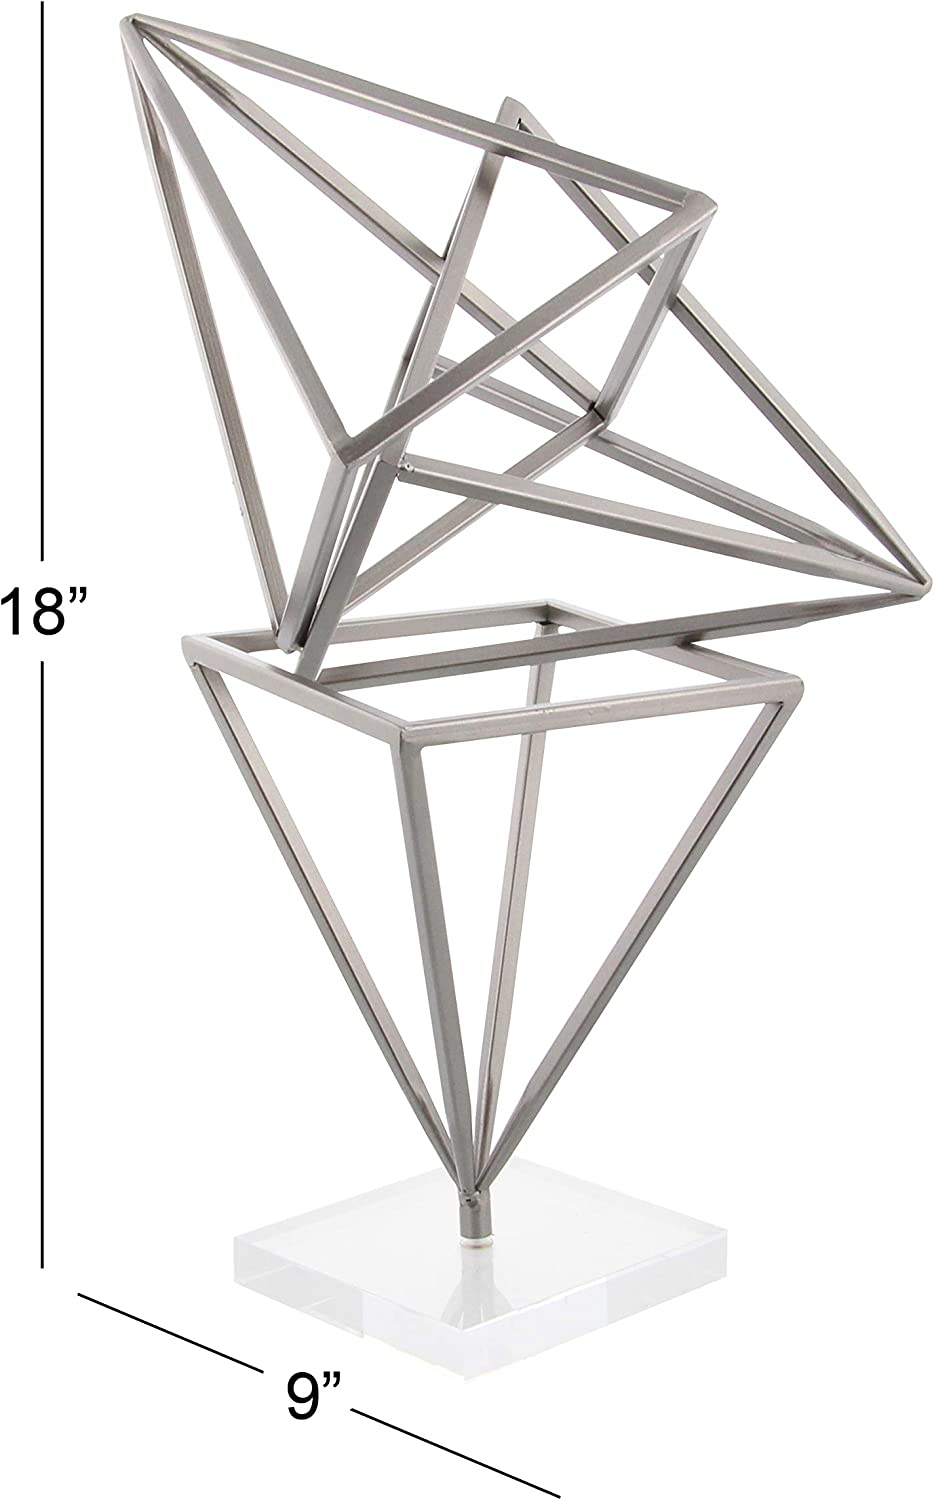 Gray//Clear Deco 79 56942 Iron and Acrylic Prism Sculpture 18 x 9